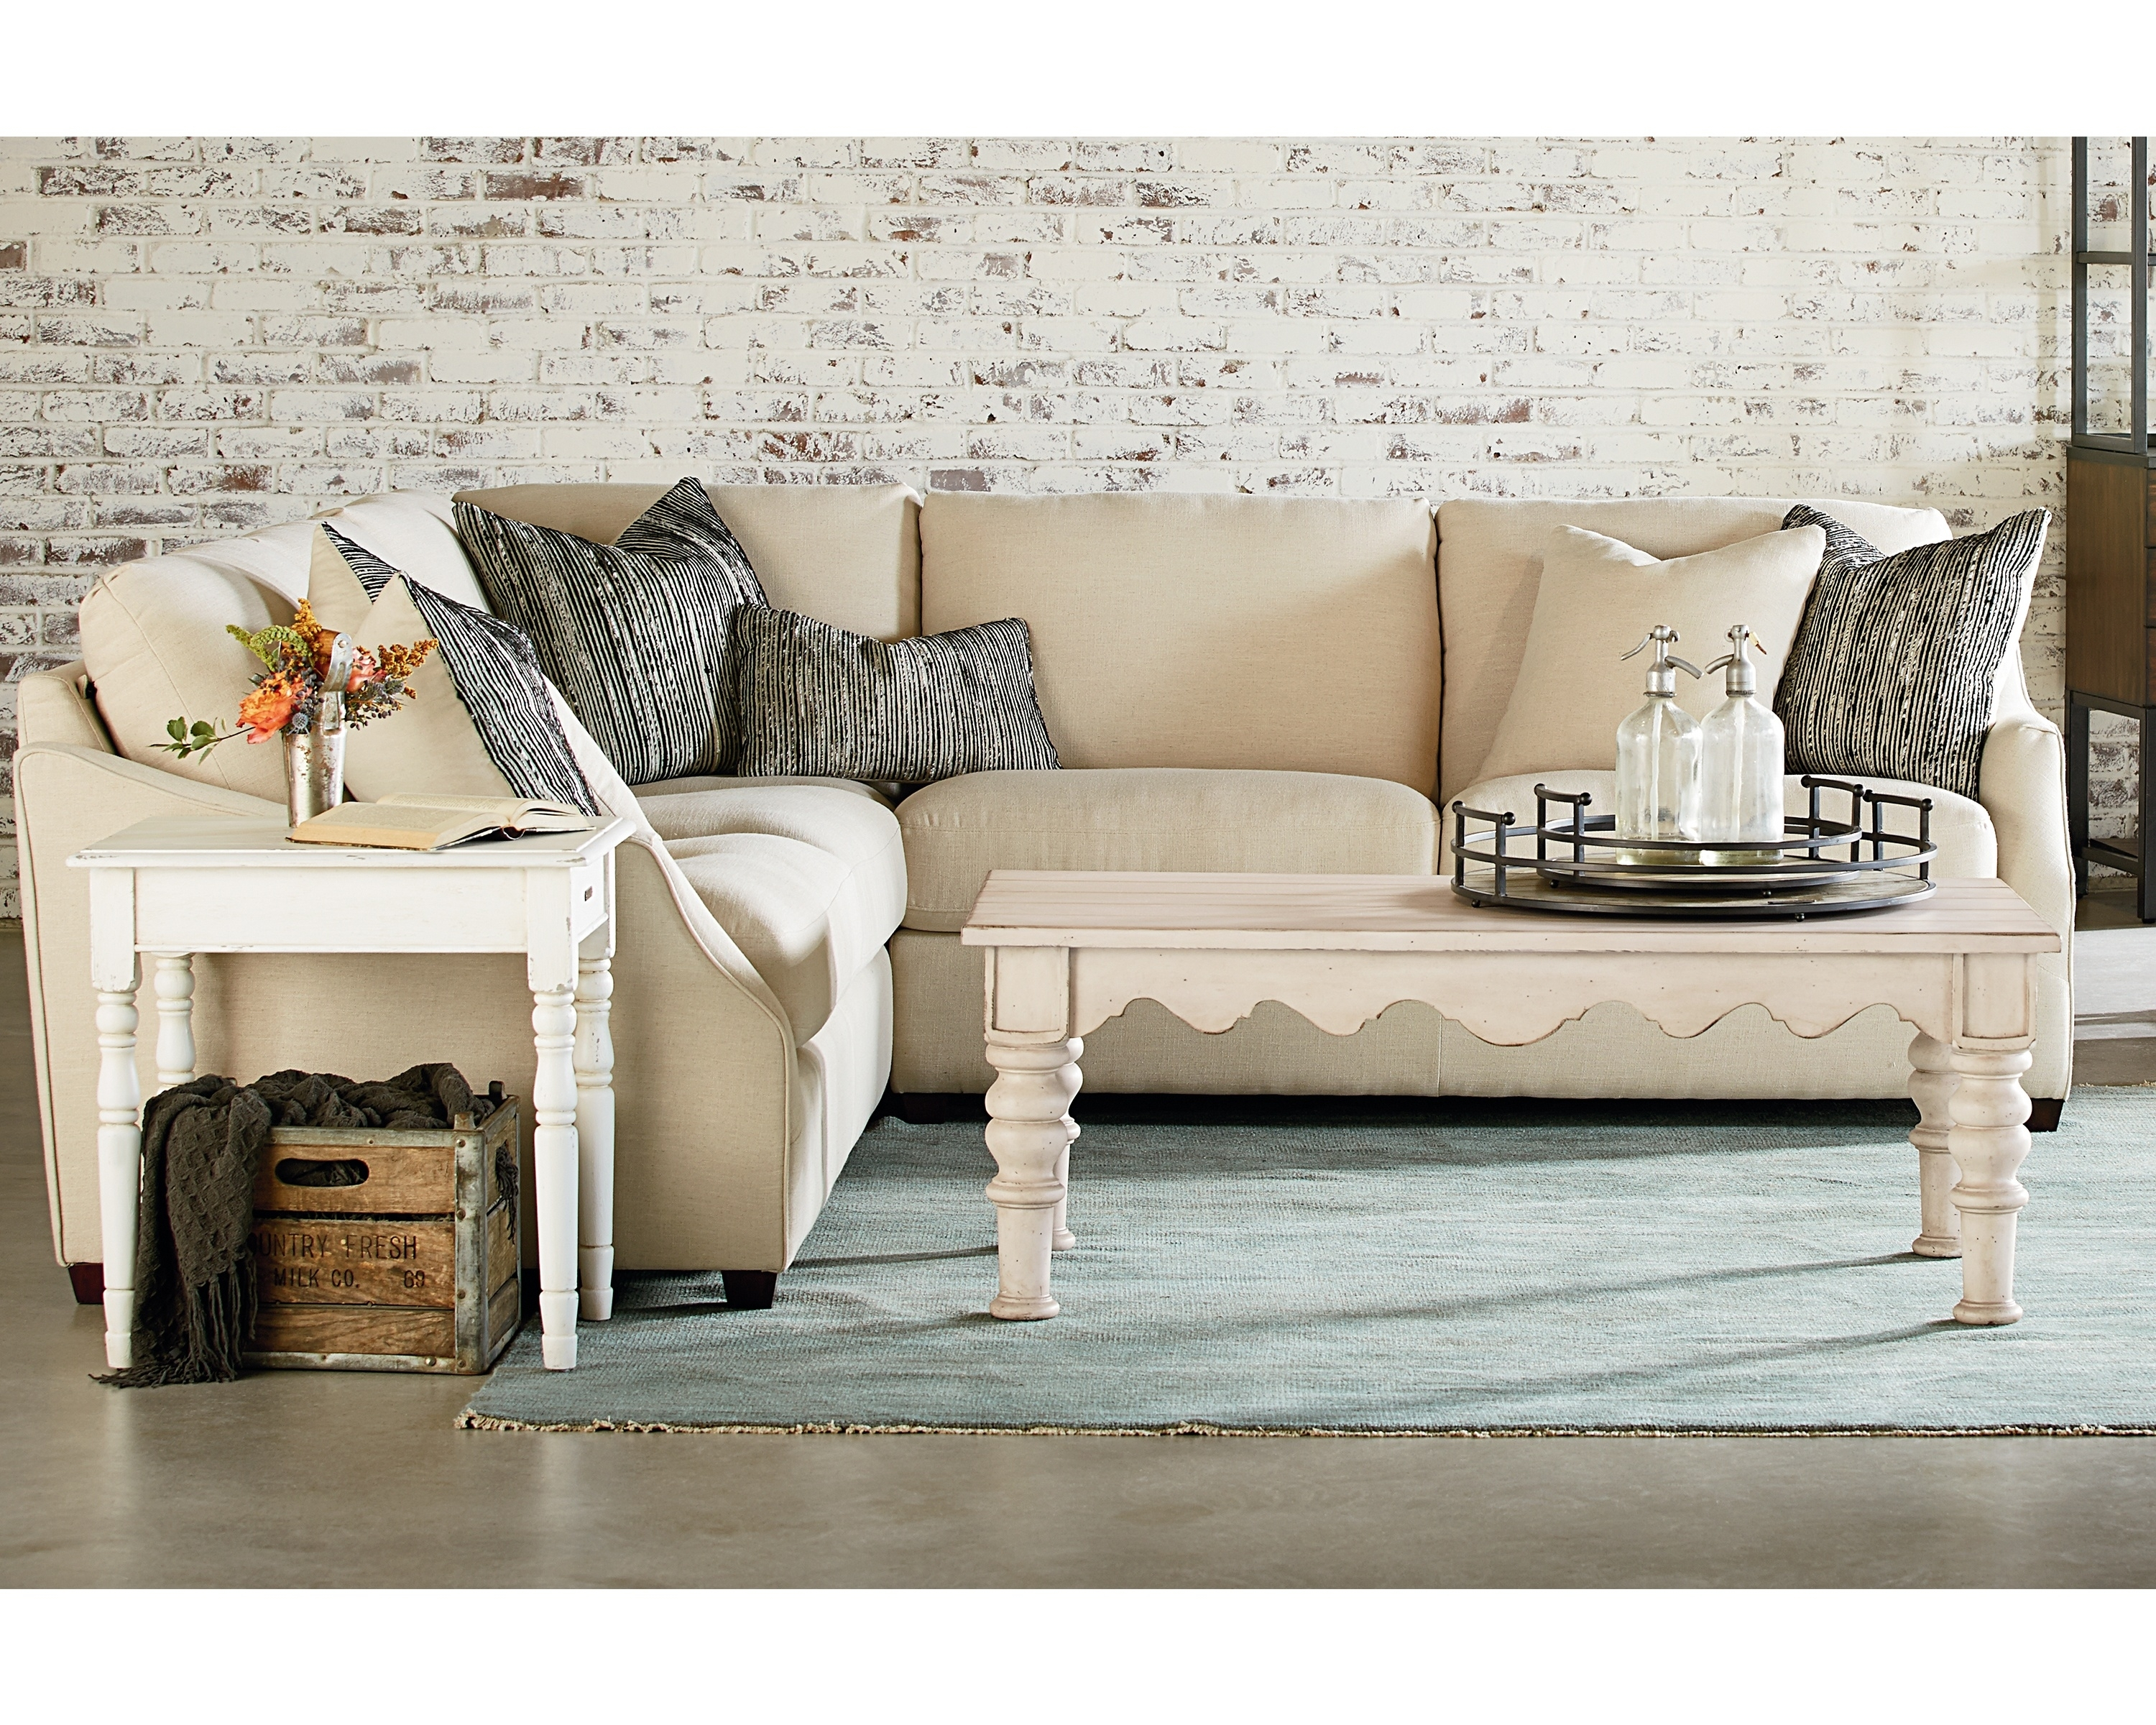 Homestead Sectional – Magnolia Home In Magnolia Home Homestead 3 Piece Sectionals By Joanna Gaines (Image 10 of 25)